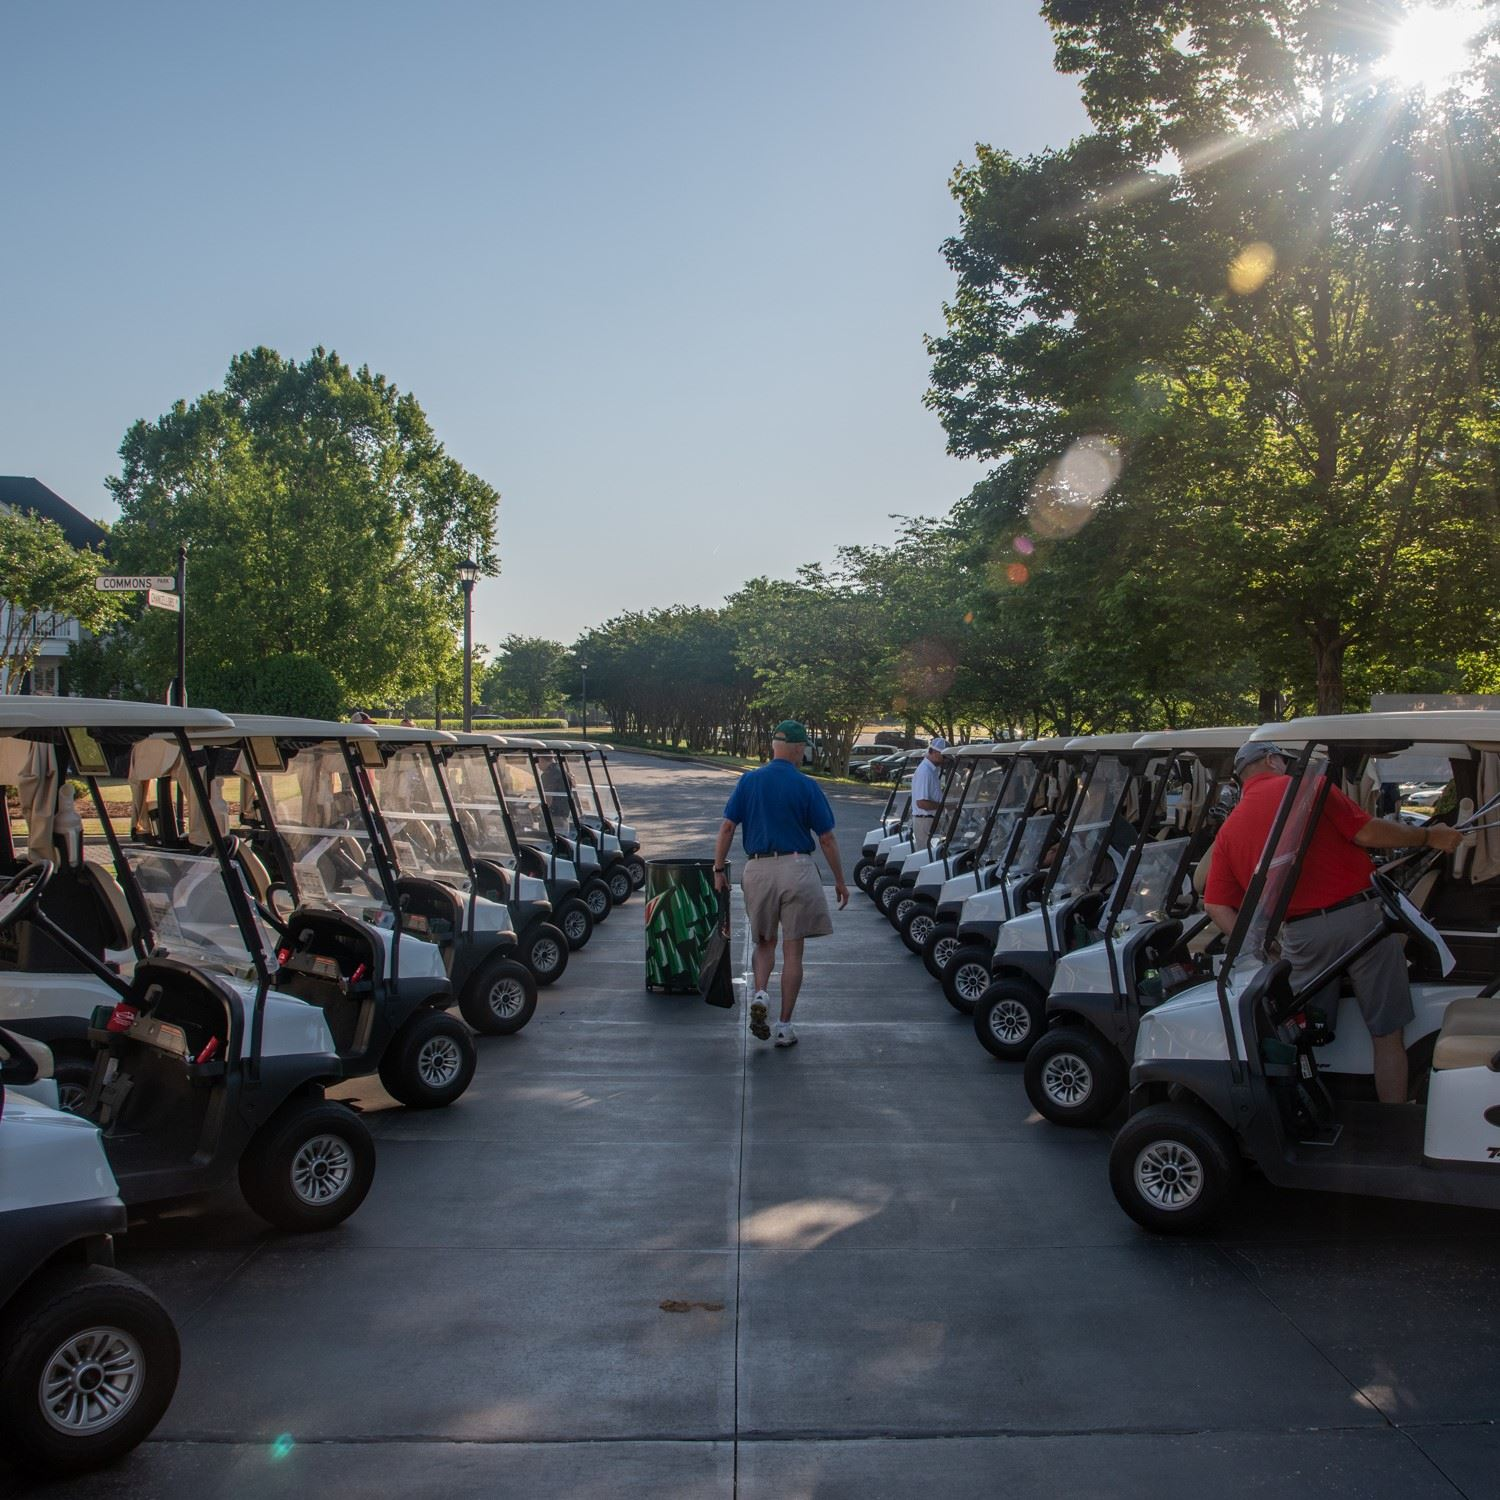 golfer walking through rows of carts